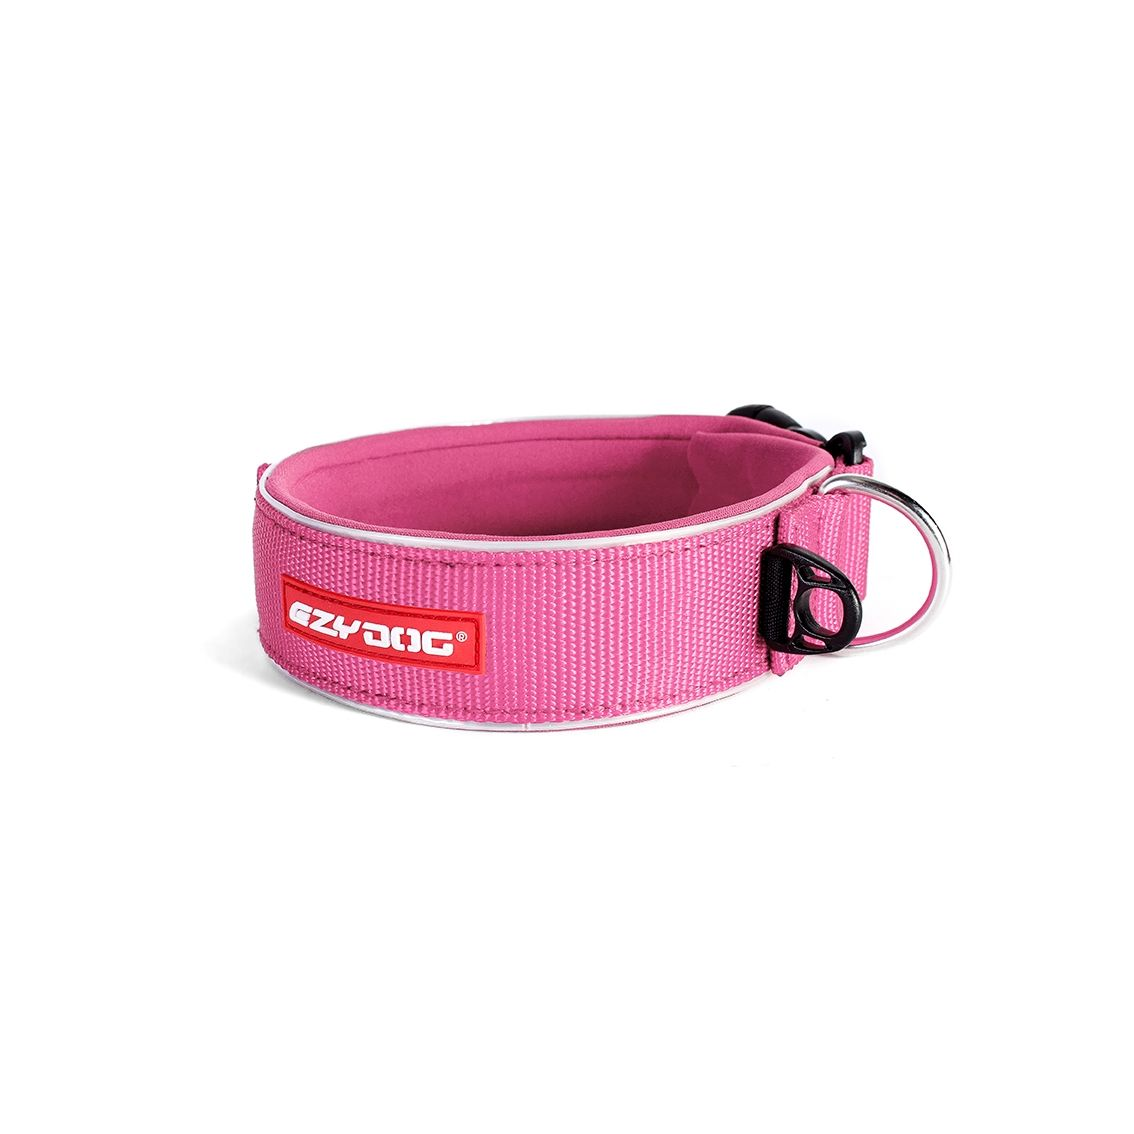 Neo Wide Brede halsband hond